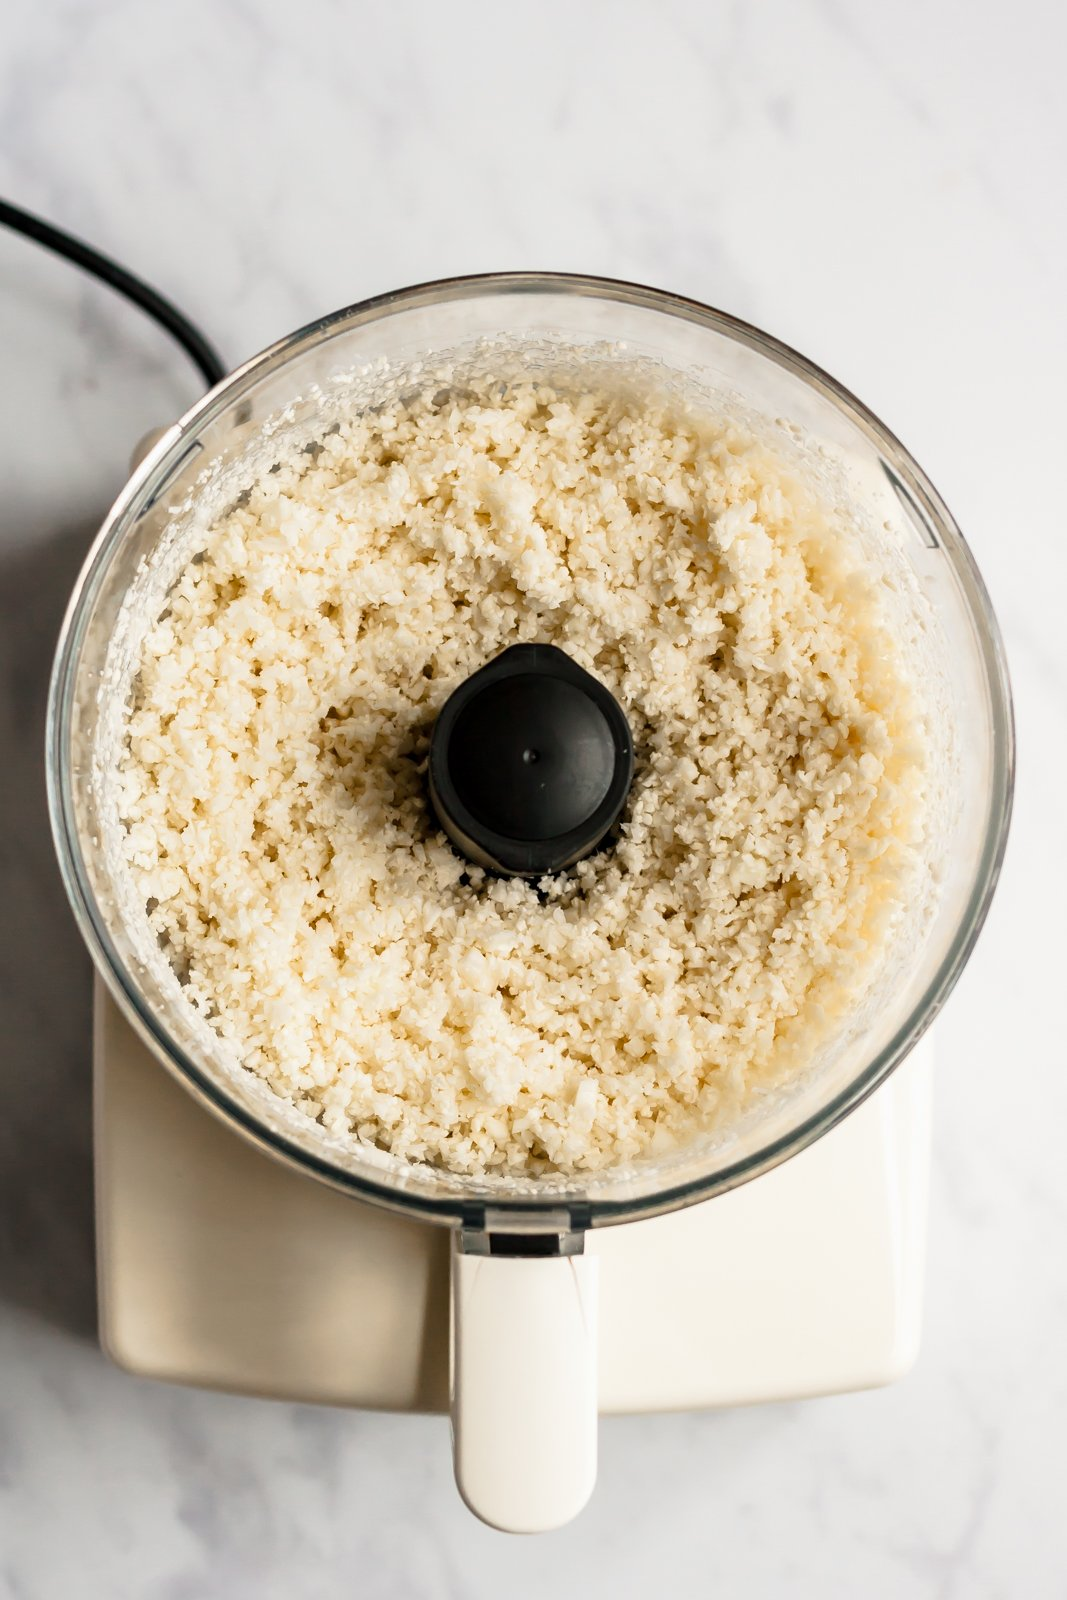 cauliflower rice in a food processor